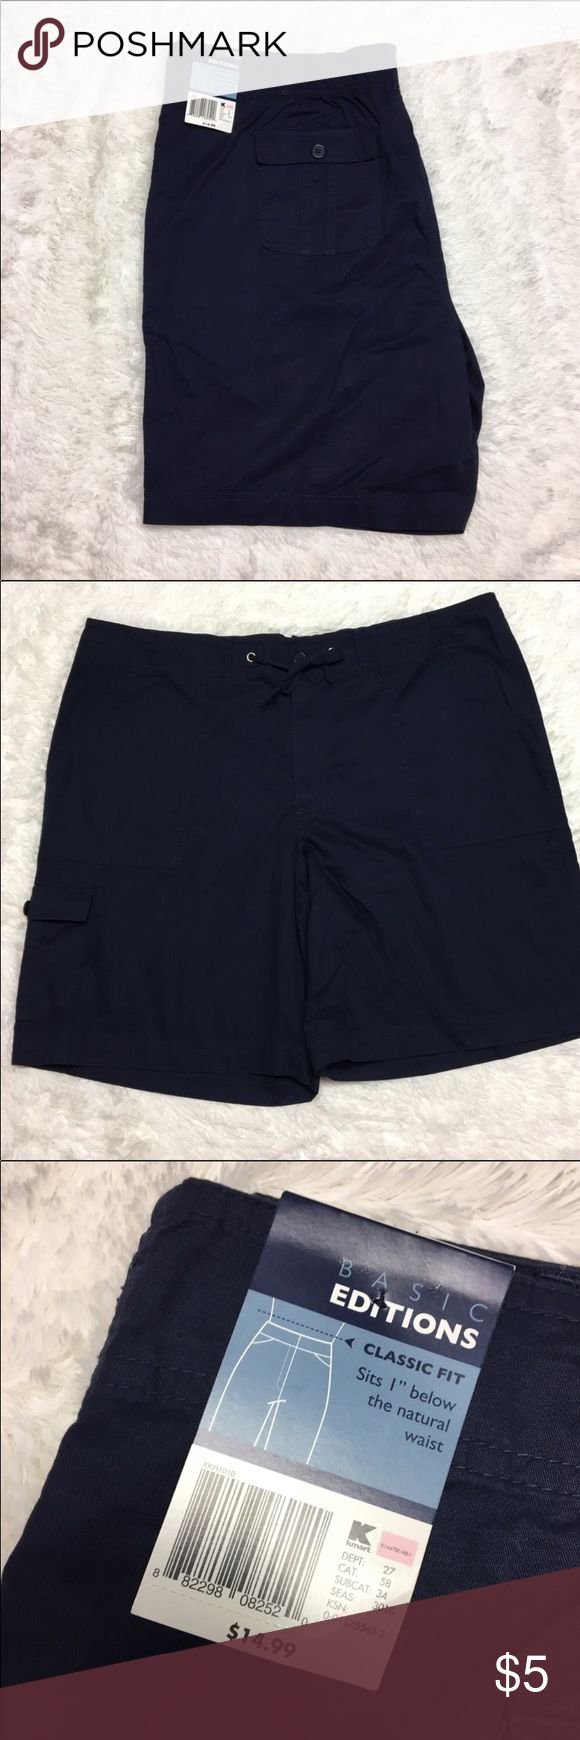 🎈🎈🎈Basic Edition Classic Fit Shorts Basic Edition Classic Fit knee length shorts women's size XXL brand new with tags. Draw string waist - Navy in color. Inventory: A Shorts